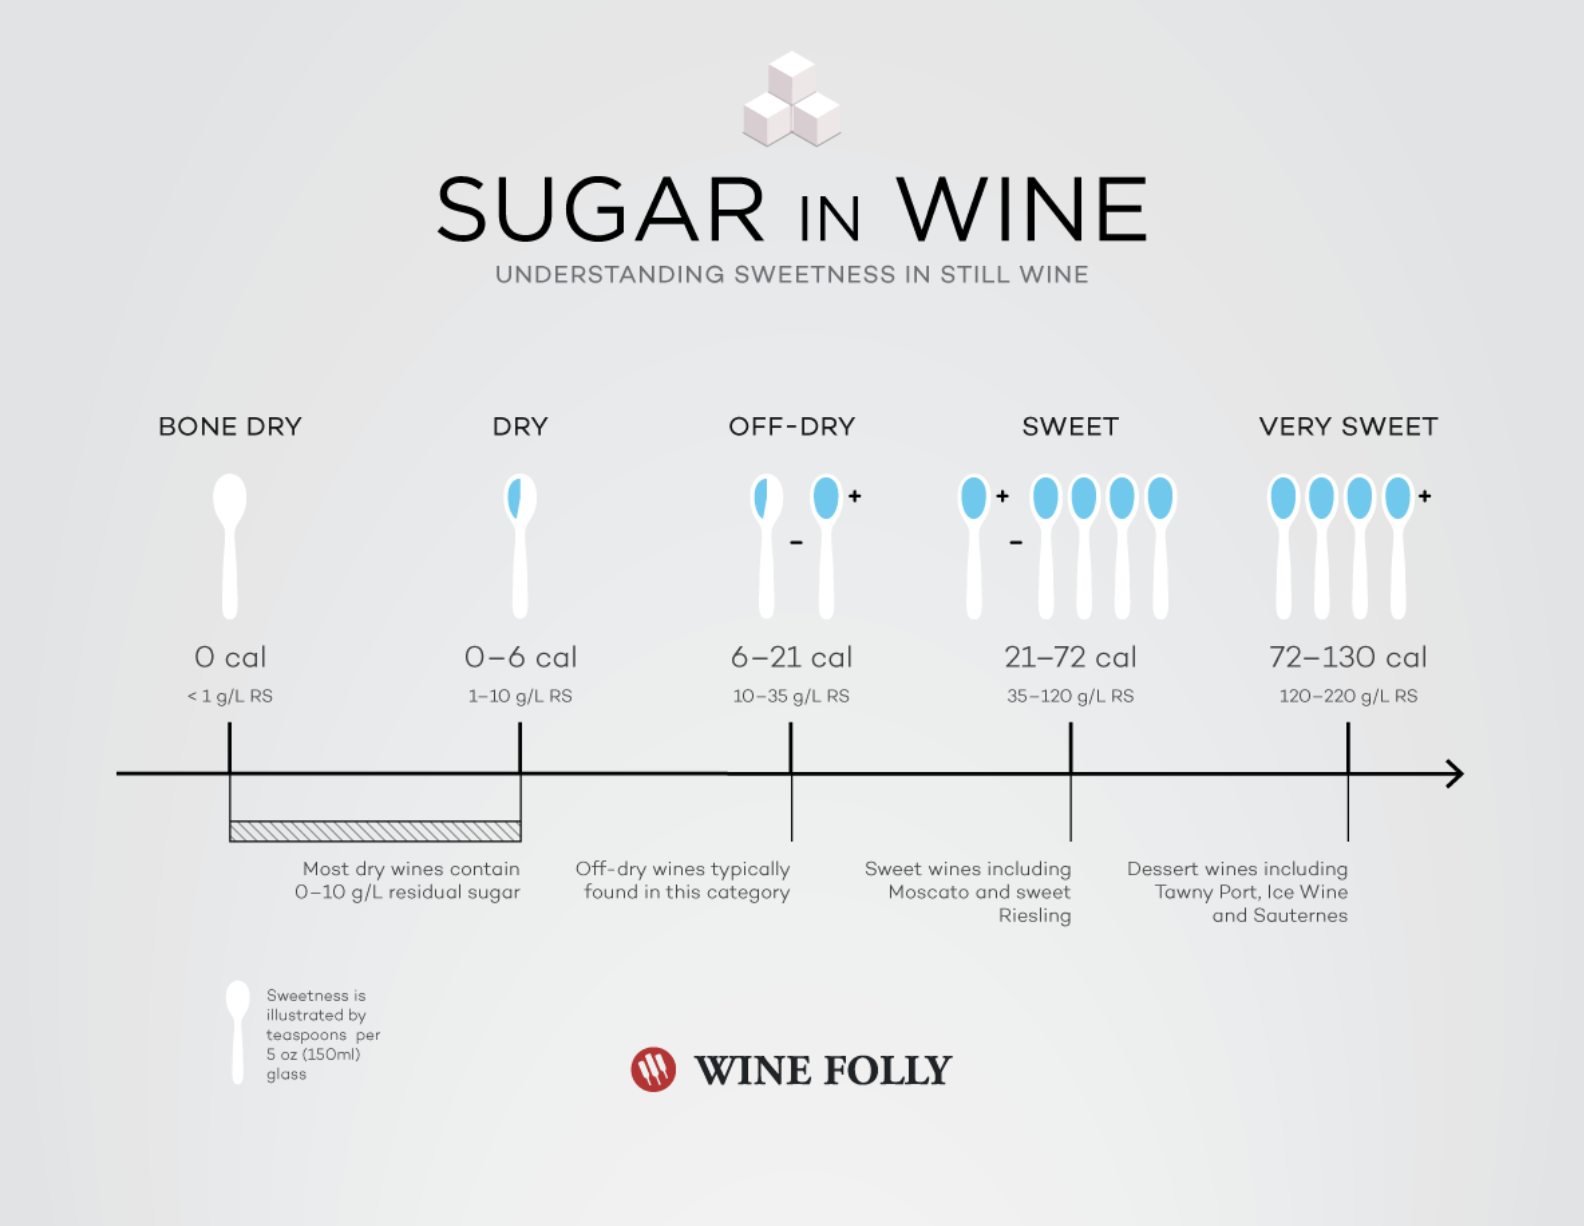 The chart describes sweetness in wines from bone dry to very sweet